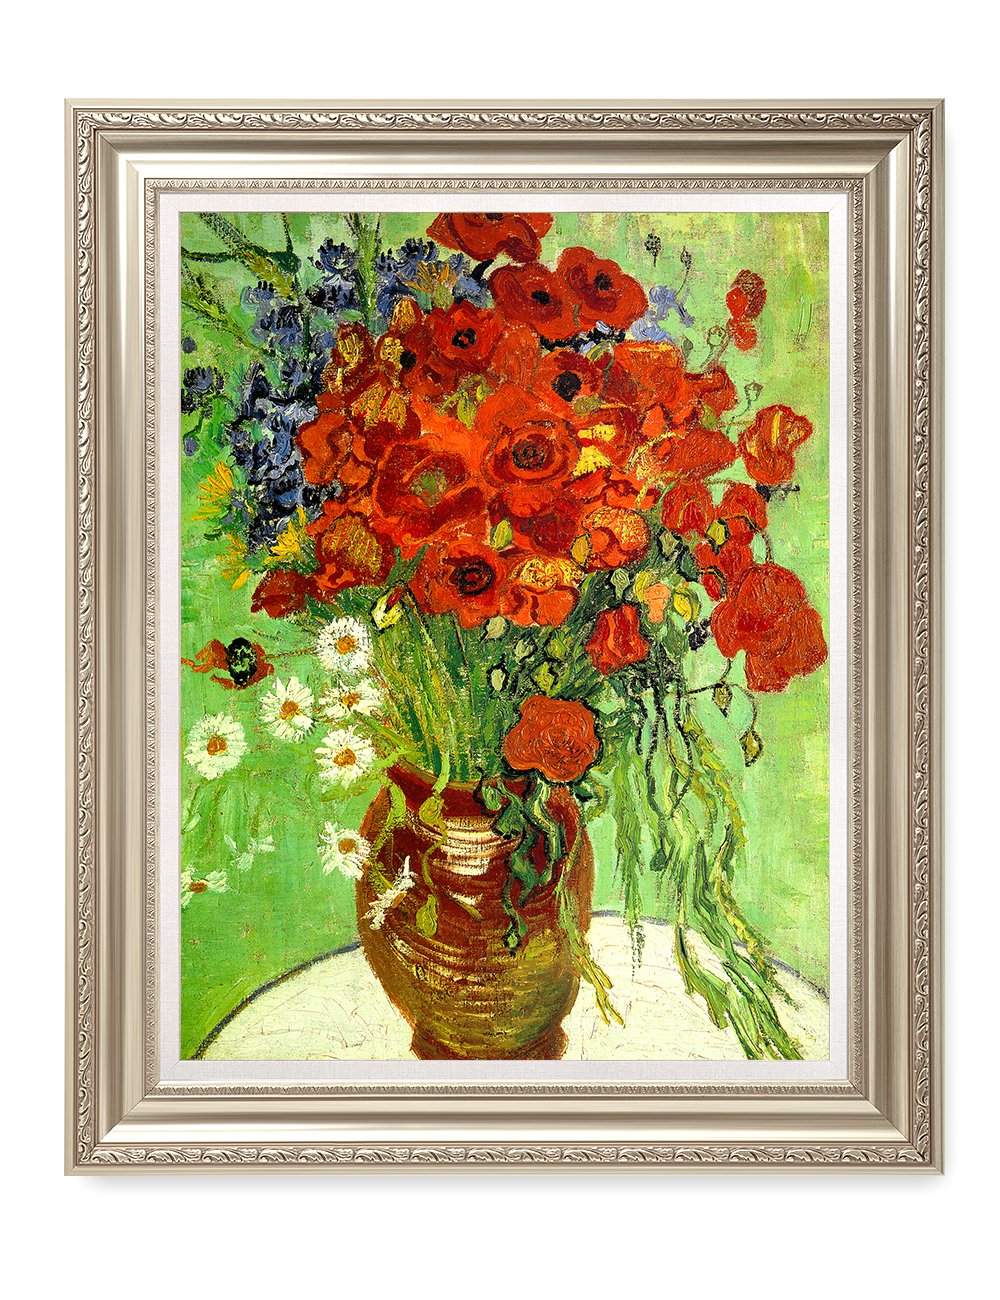 DecorArts- Red Poppies And Daisies, Vincent Van Gogh Art Reproduction. Giclee Print& Museum Quality Framed Art. 24x30'', Outside Size: 30x36'' by DECORARTS